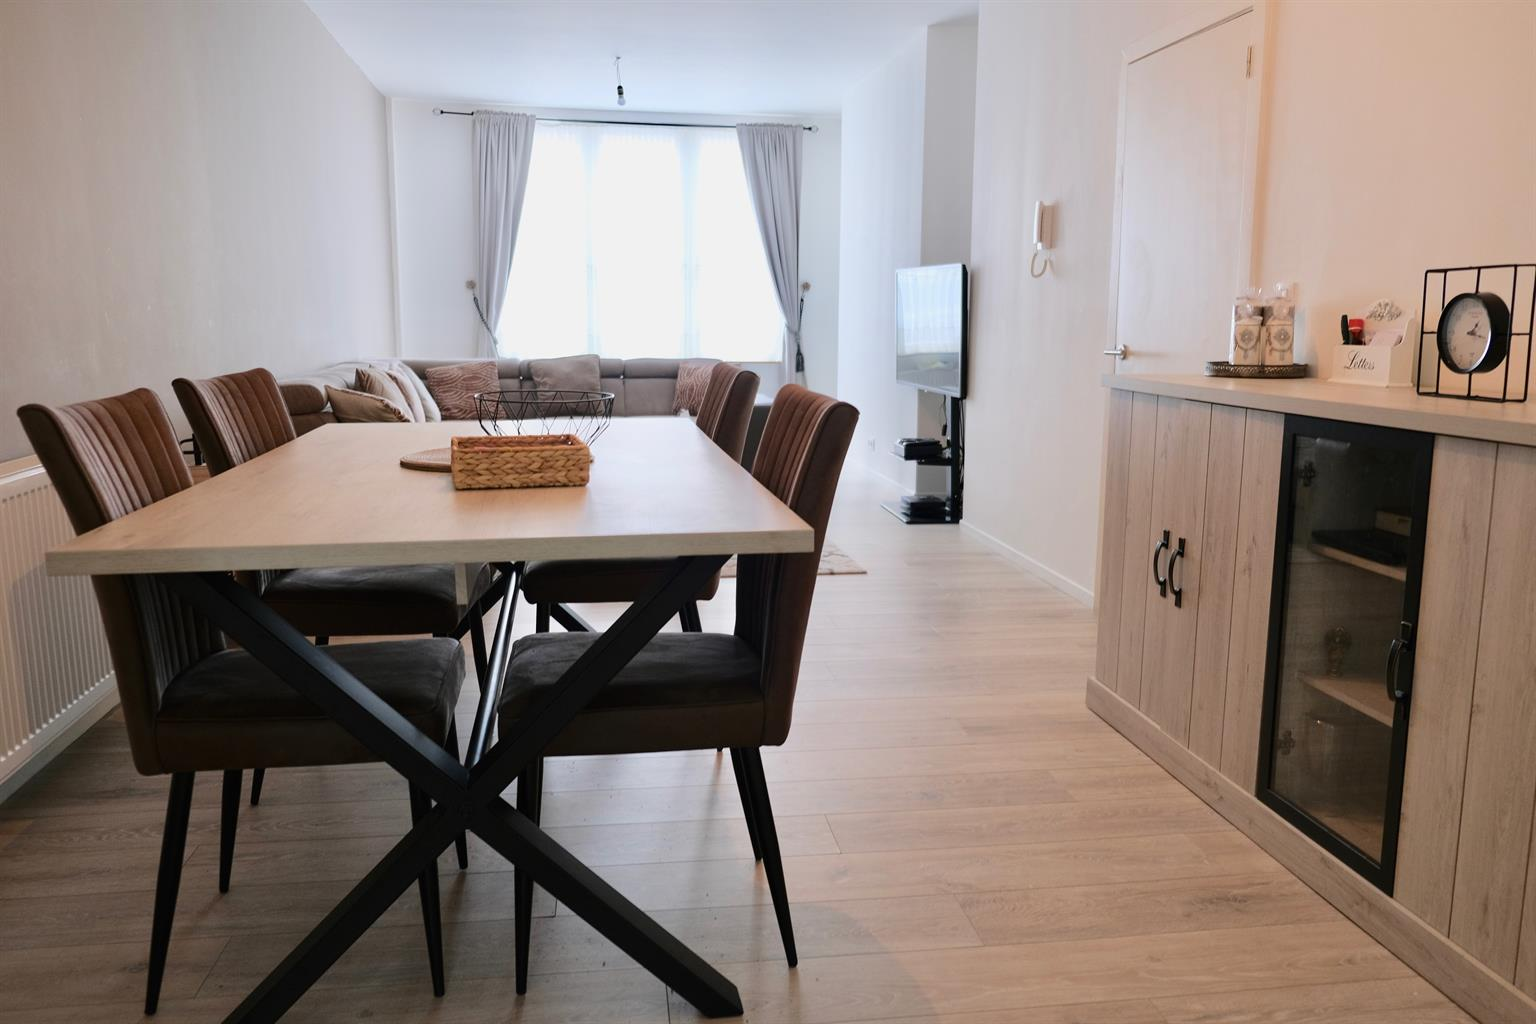 Appartement - Berchem-Sainte-Agathe - #4058677-4